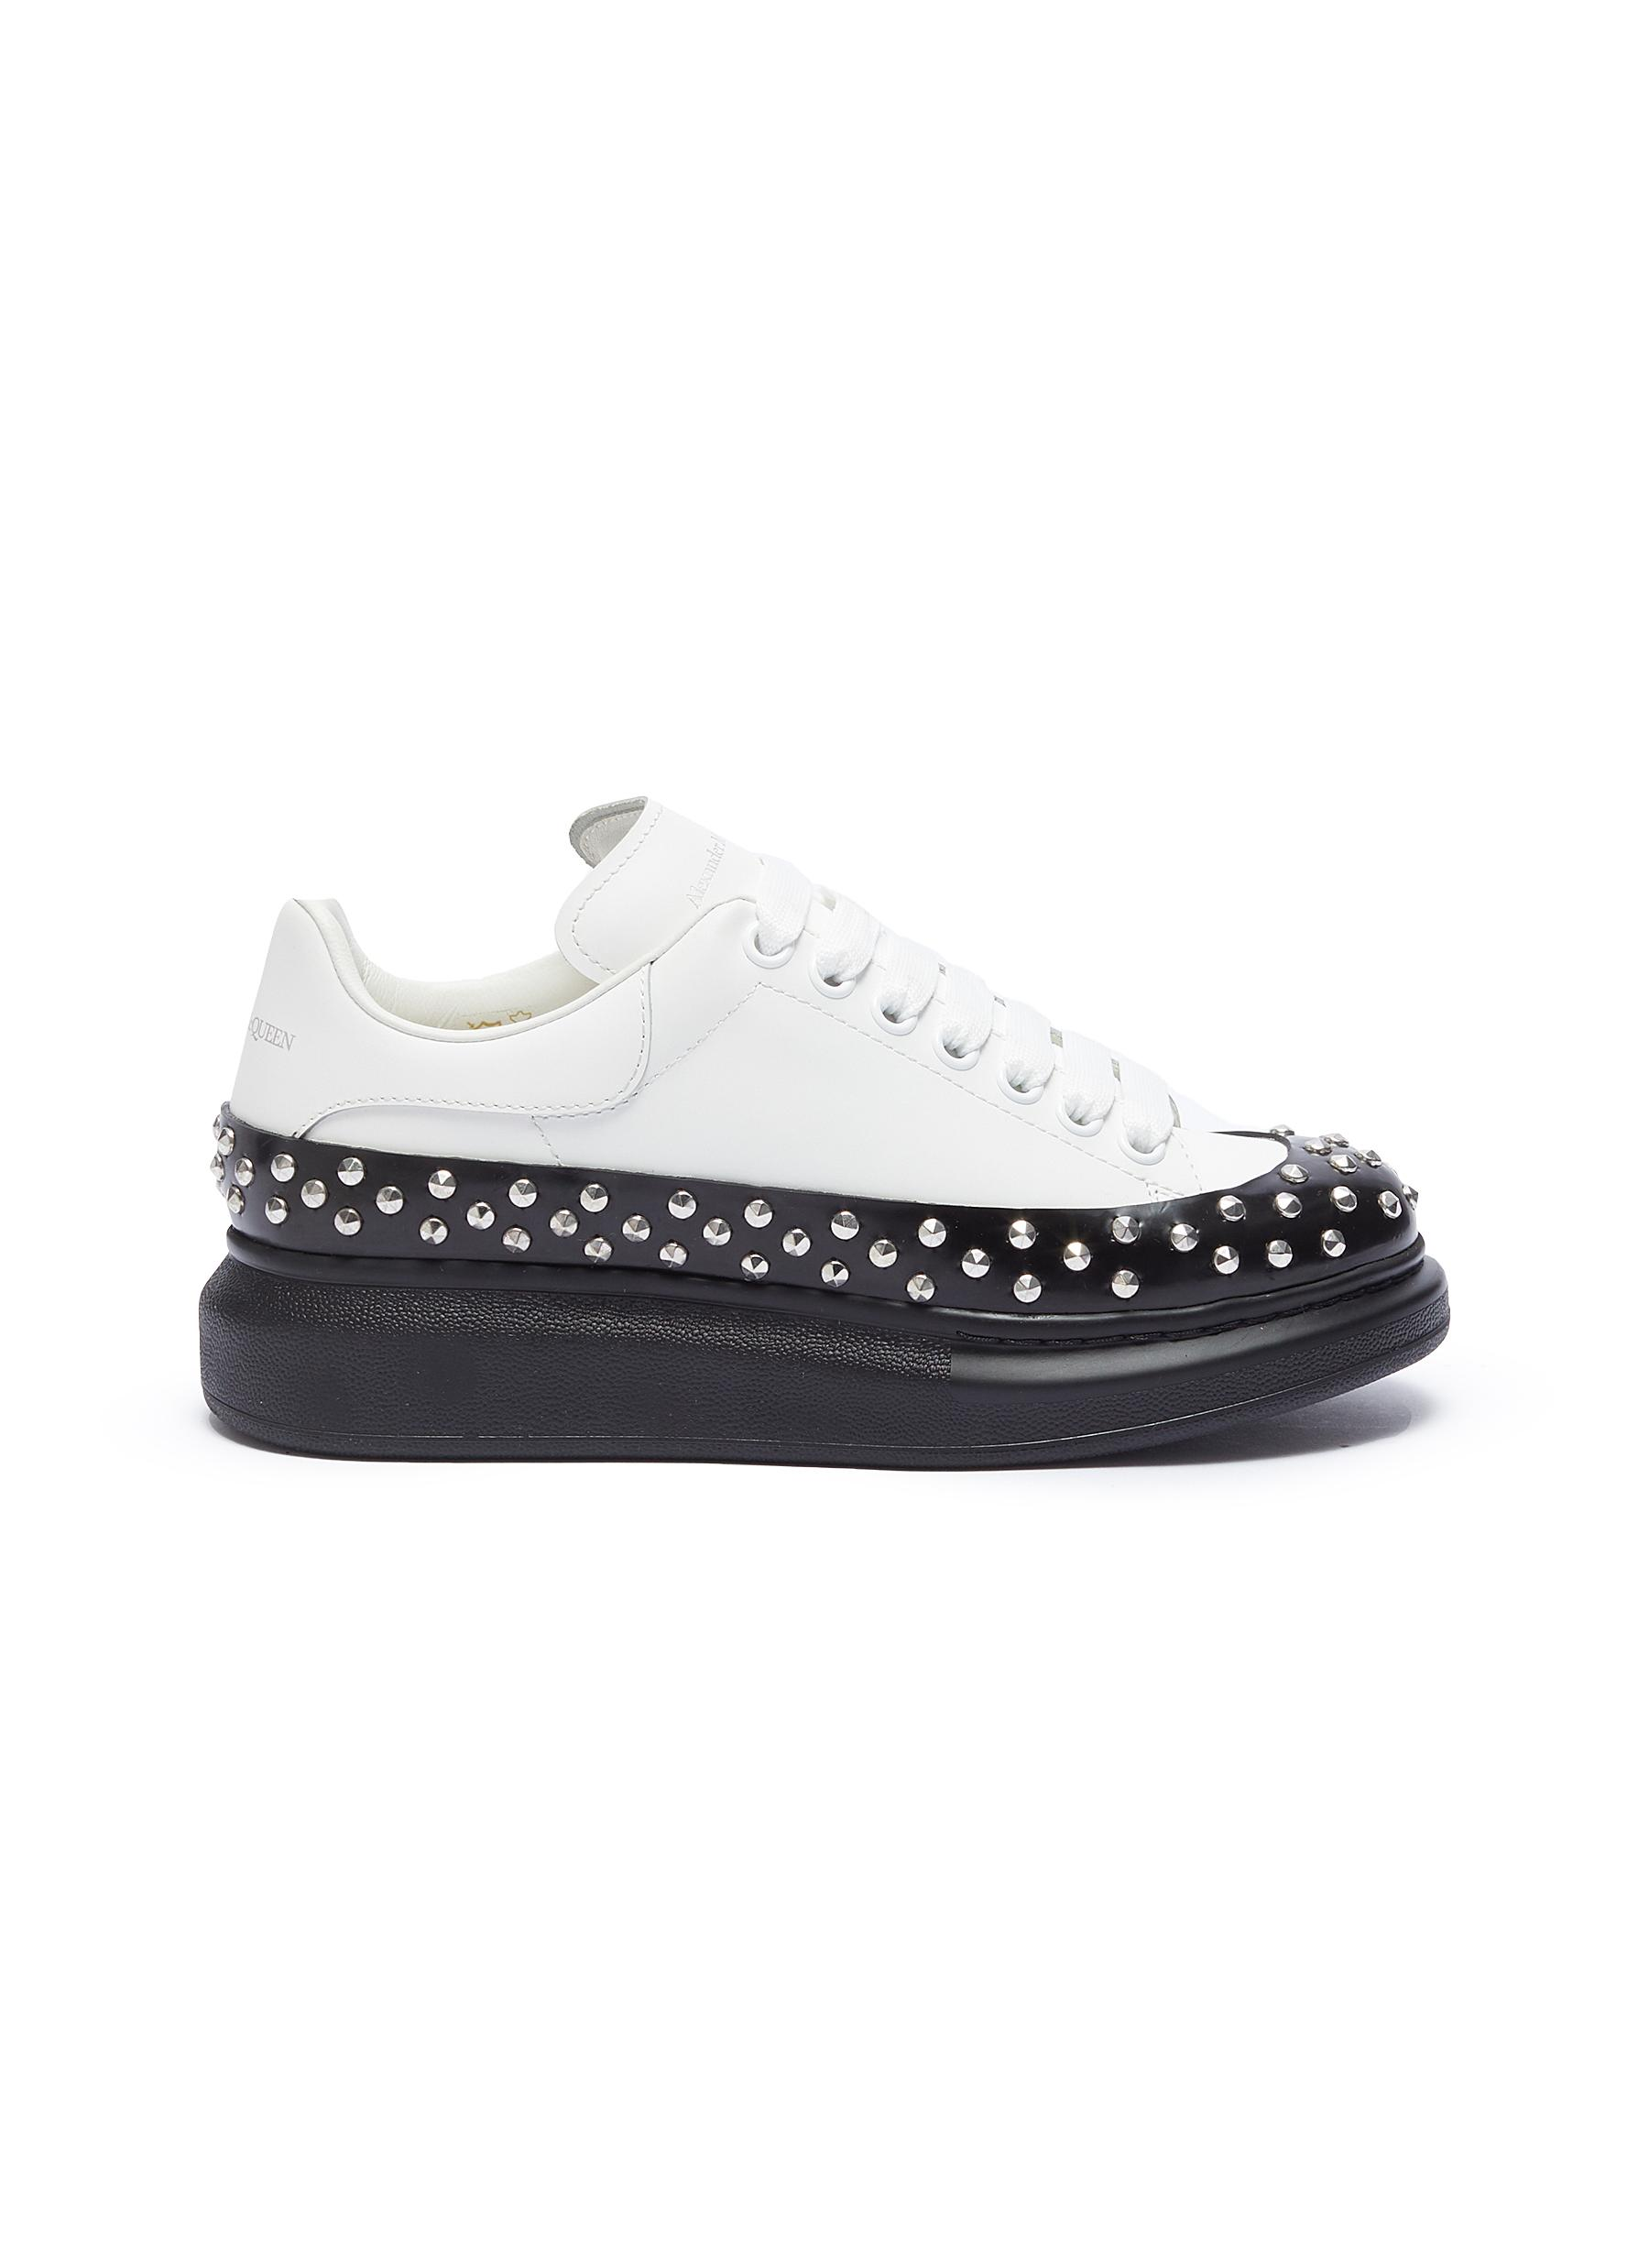 Larry contrast sole studded sneakers by Alexander Mcqueen